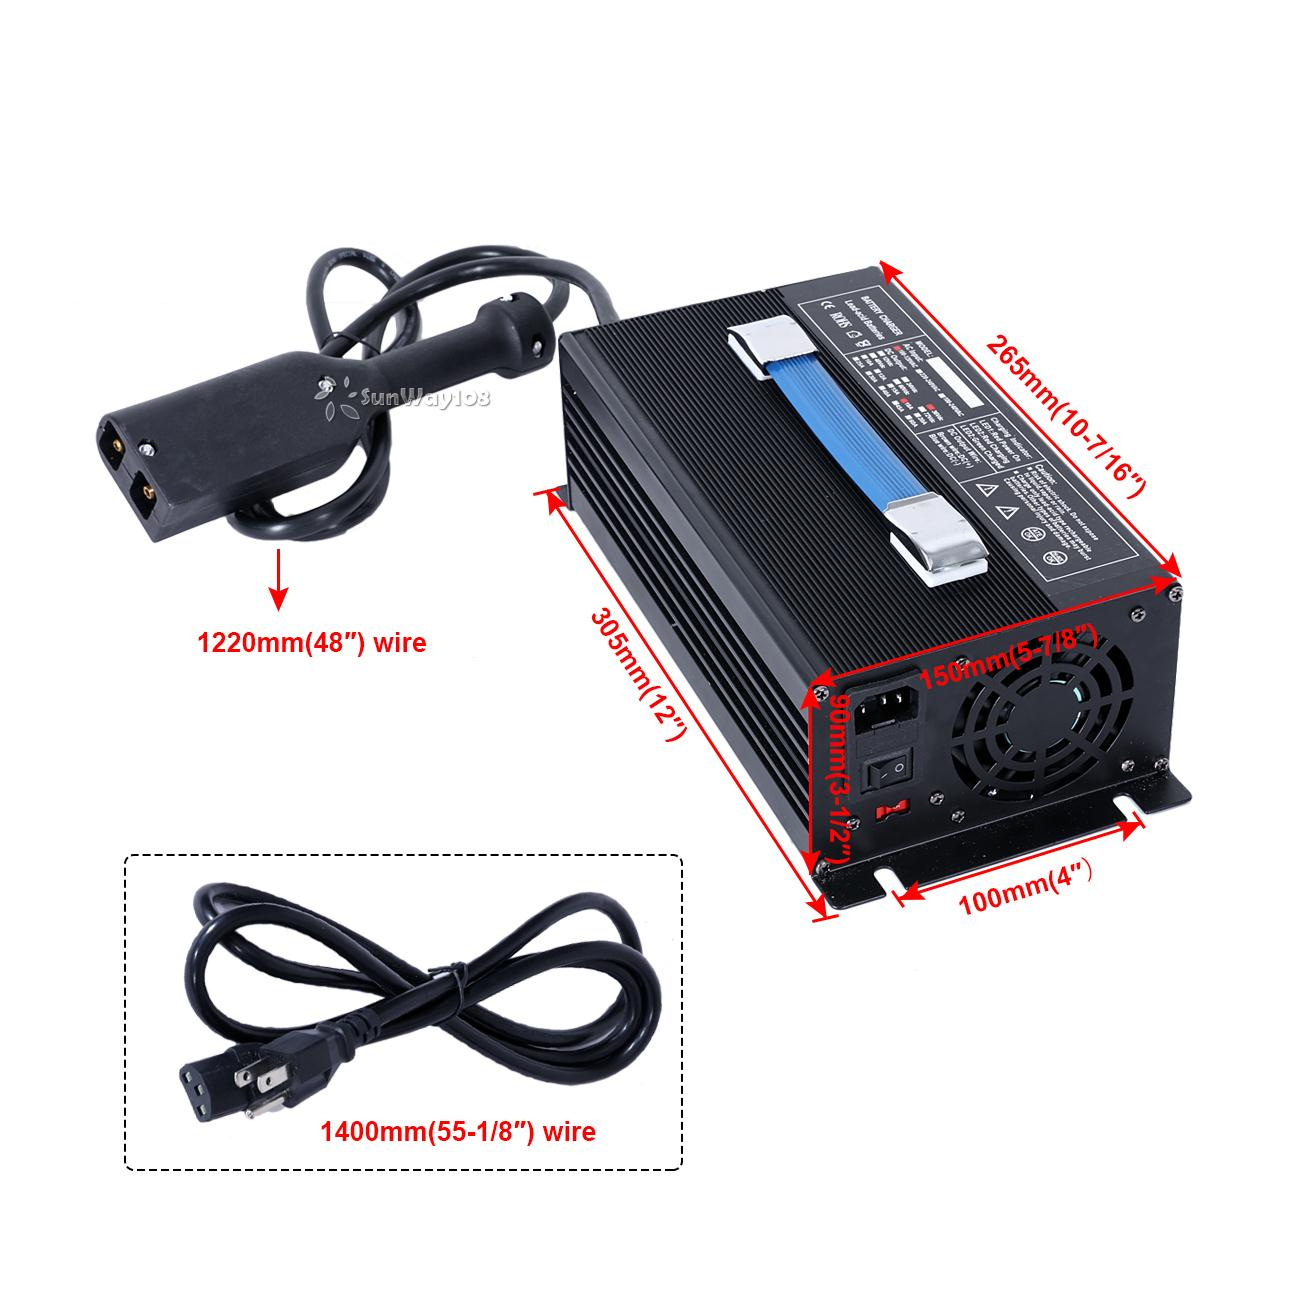 hight resolution of 36 volt 18 amps golf cart battery charger ez go txt golf cart battery charger circuit 48 volt golf cart battery charger wiring diagram